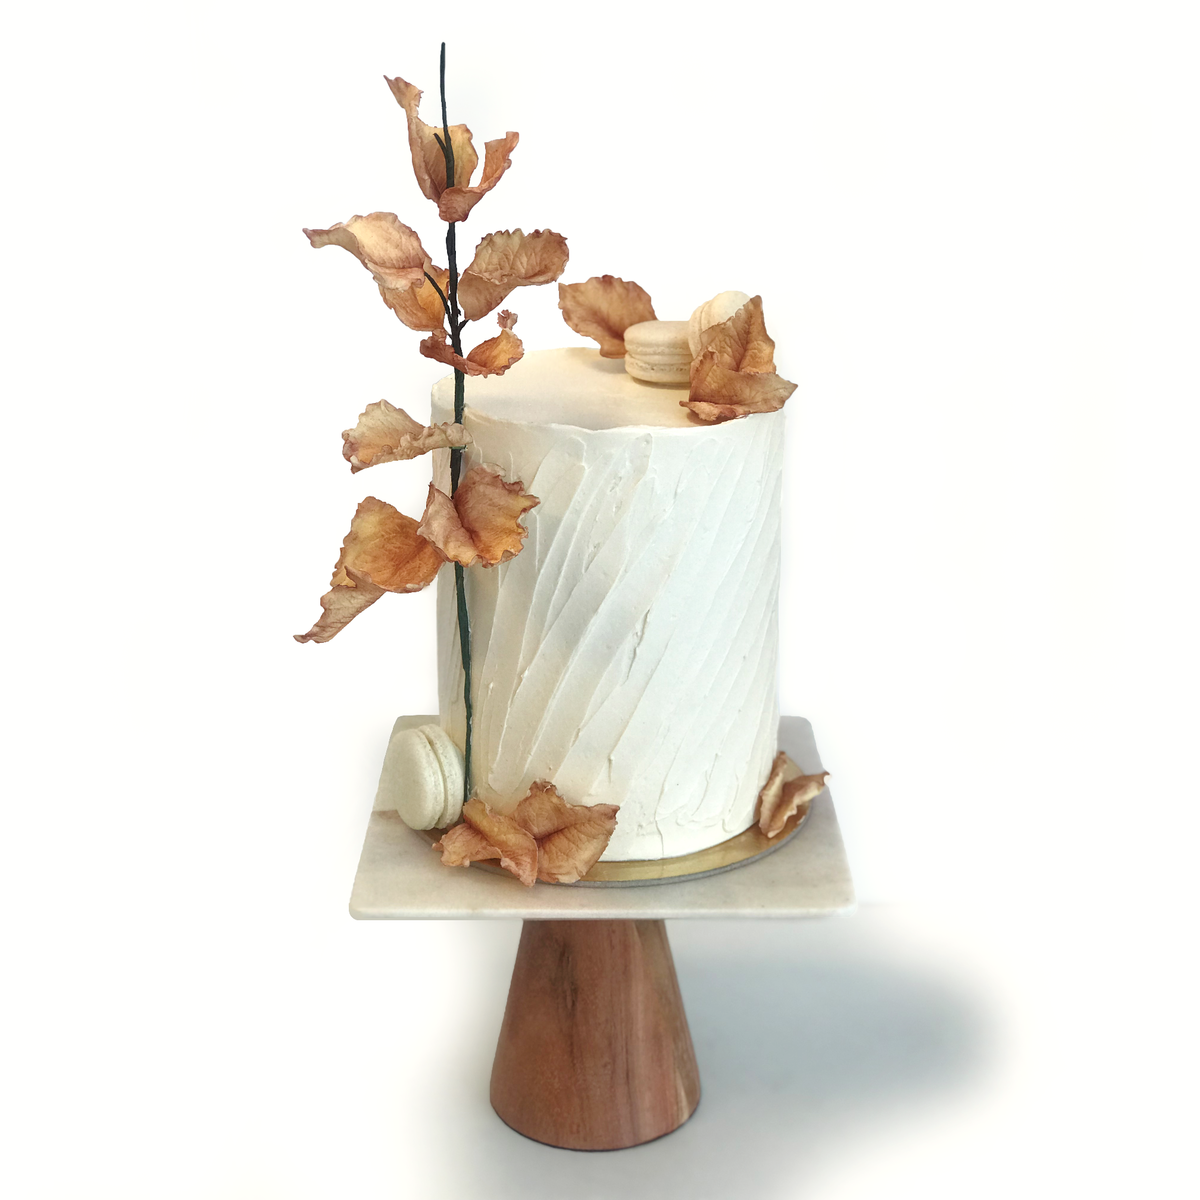 Whippt Auction Cake Oct 10, 2019